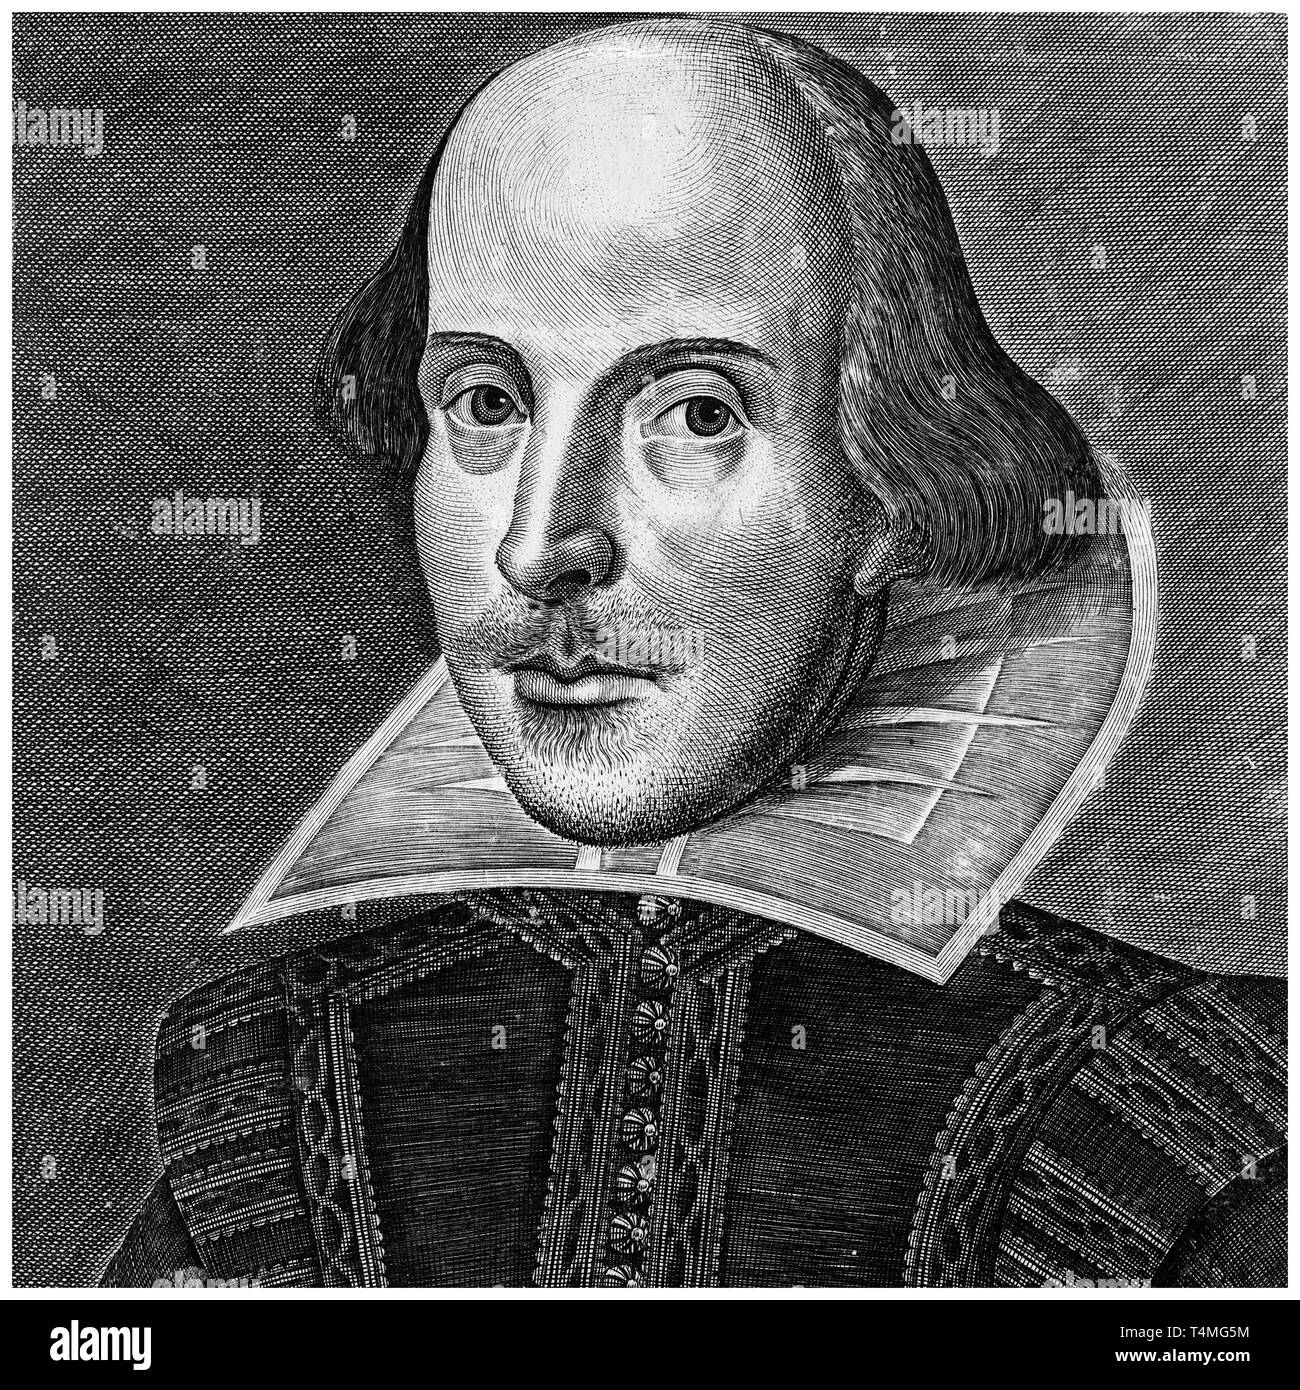 William Shakespeare (1564-1616), portrait engraving, Martin Droeshout, 1623 Stock Photo